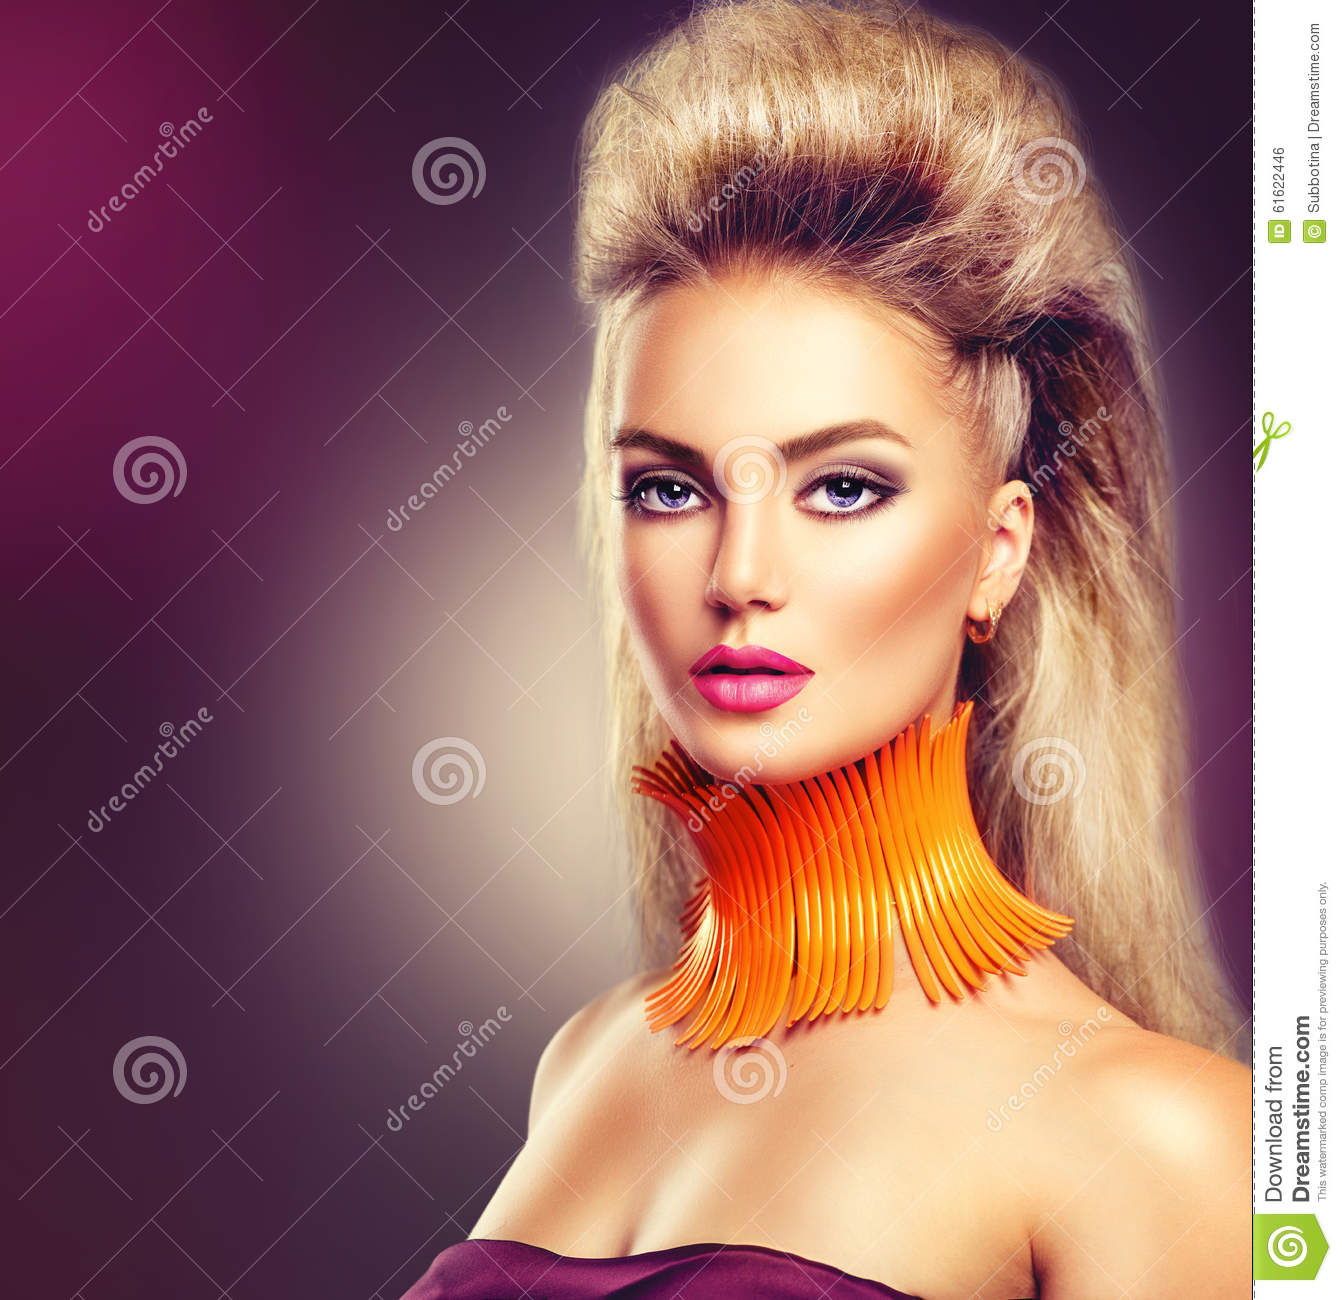 High Fashion Model Girl With Mohawk Hairstyle Stock Photo